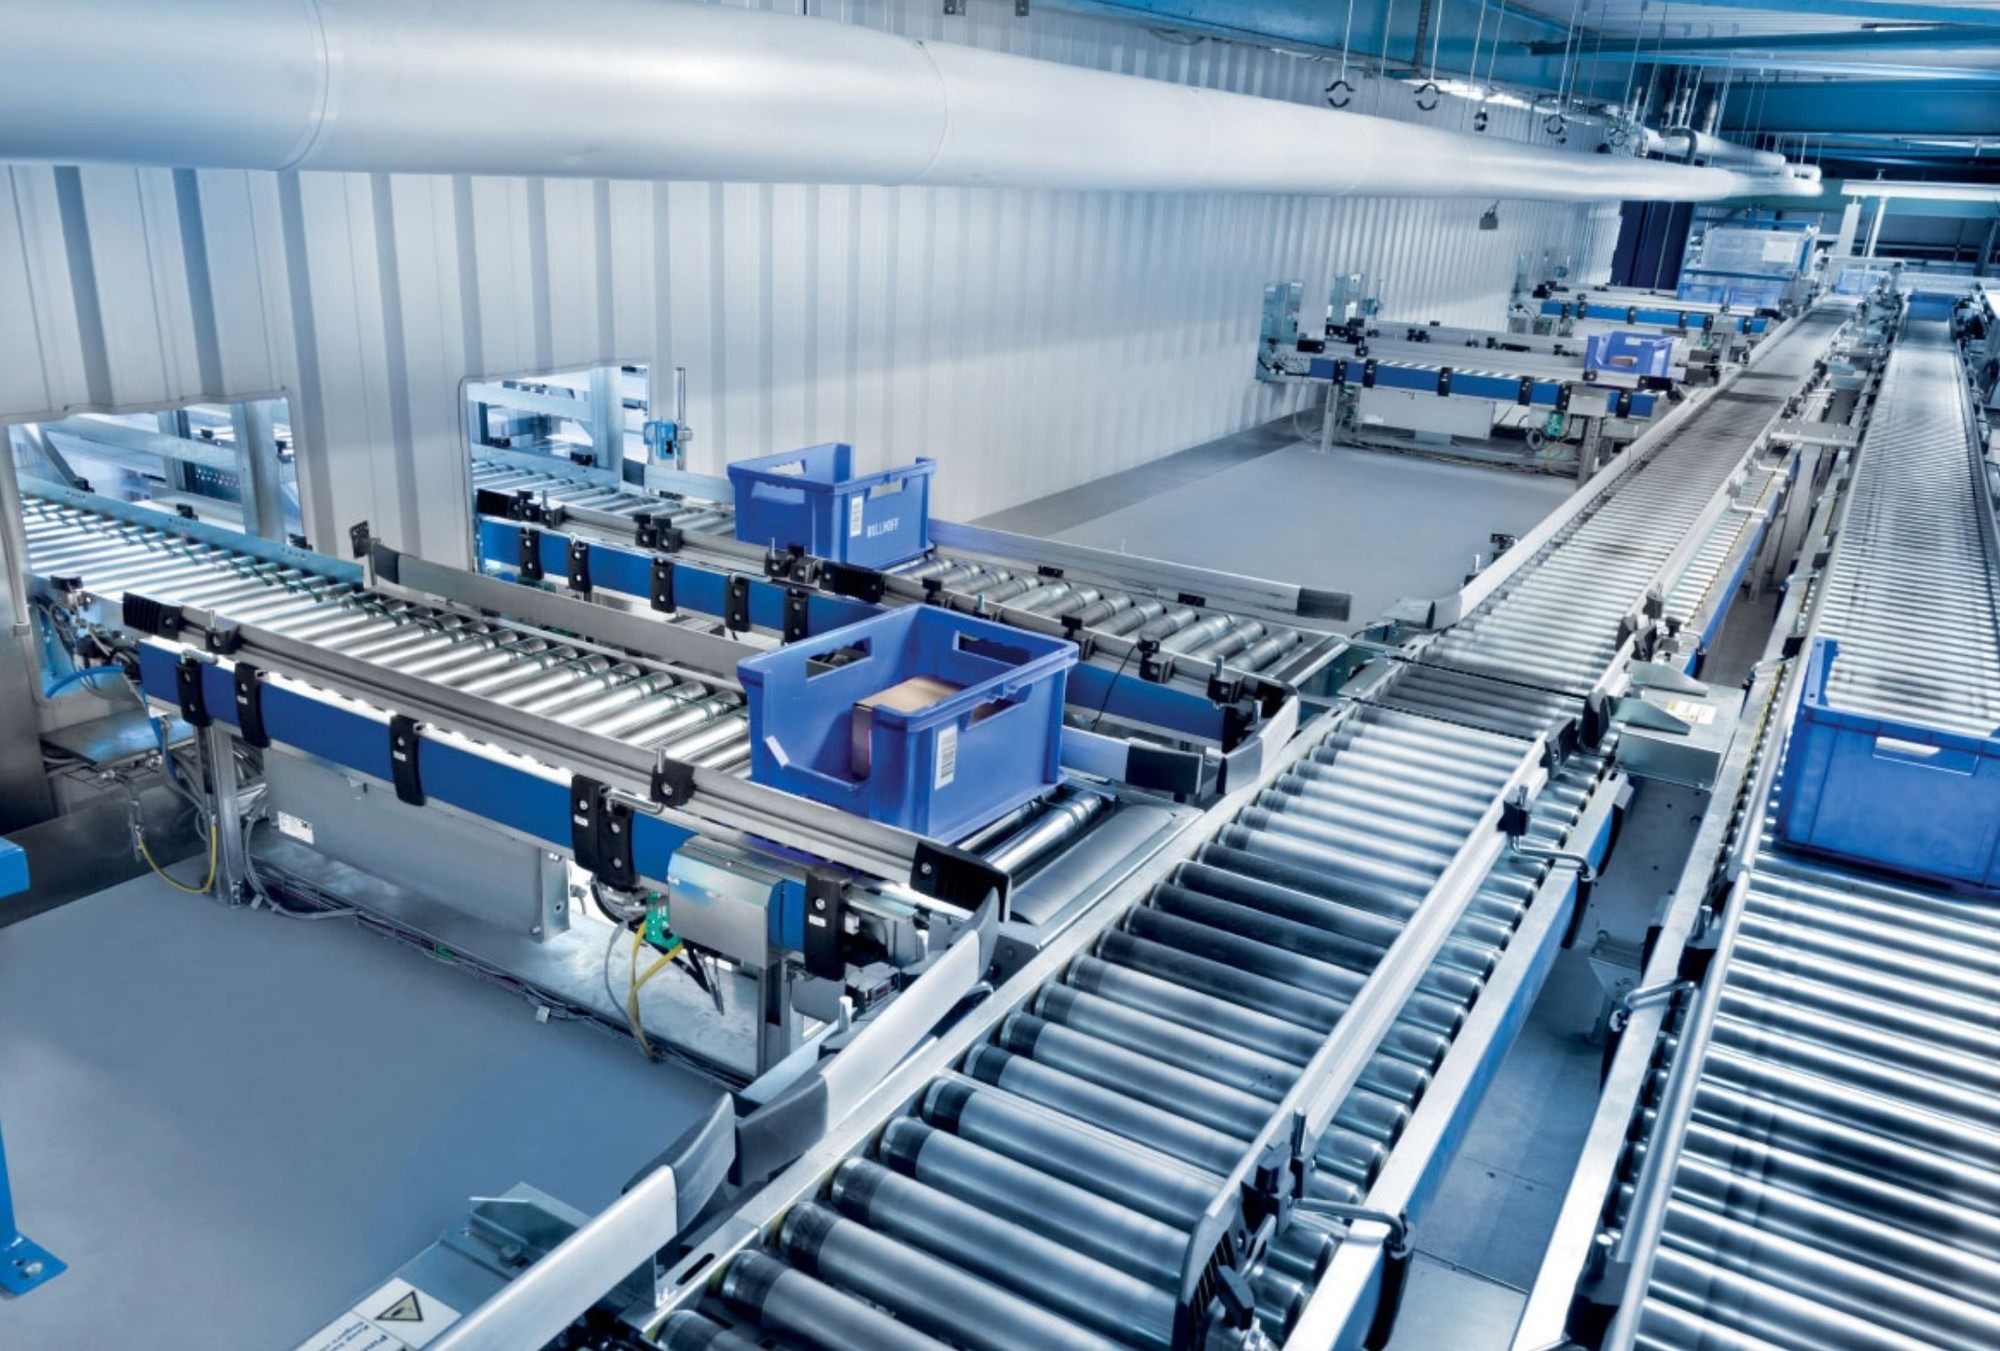 Turnkey Conveyor Systems Qc Material Handling Equipment